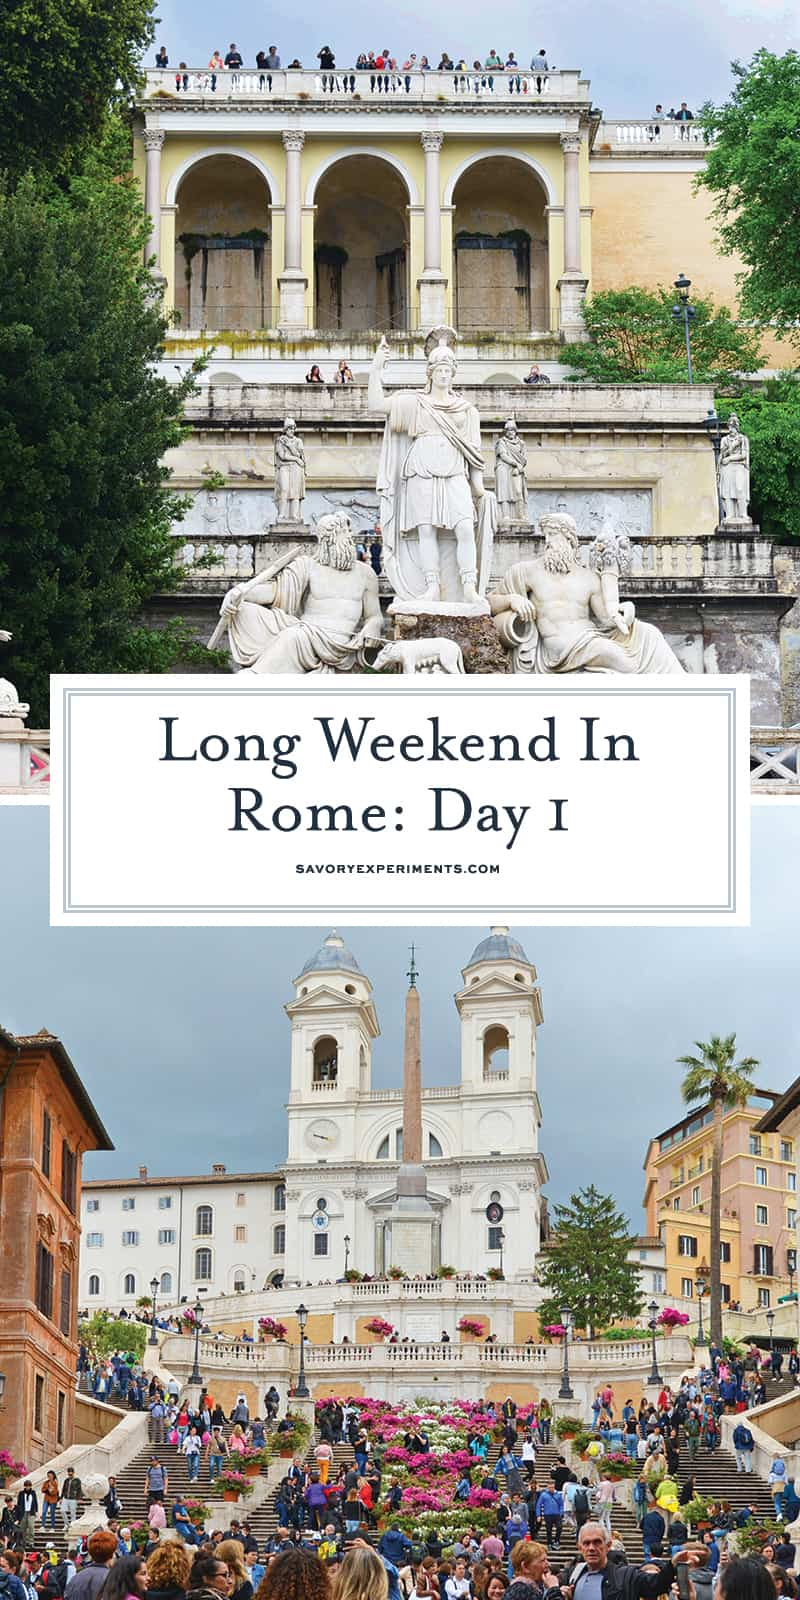 Plan your long weekend in Rome with this easy itinerary that covers all the main attractions in just 2 1/2 days and all by walking! #romeitaly #triptoitaly www.savoryexperiments.com